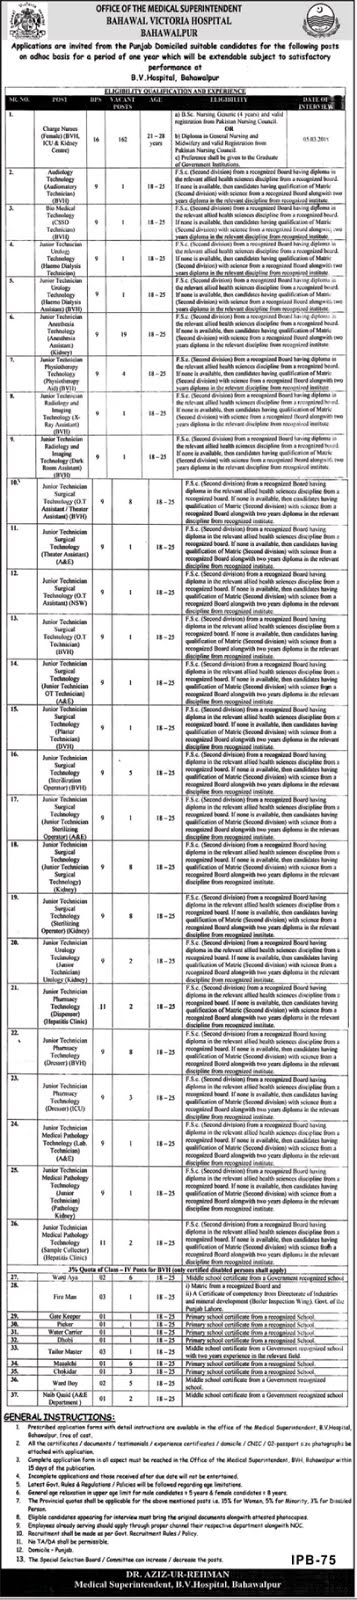 bahawal victoria hospital,victoria hospital bahawalpur,govt hospital jobs,bahawal victoria hospital bahawalpur,jobs in bahawalpur victoria hospital,jobs in bahawalpur victoria hospital 2017,bahawal victoria hospital data entry vacancies,hospital,jobs,pakistan jobs,online jobs in pakistan,new govt jobs,victoria hospital,govt jobs,hospital jobs,online jobs,today jobs in pakistan,bahawalpur jobs 2019